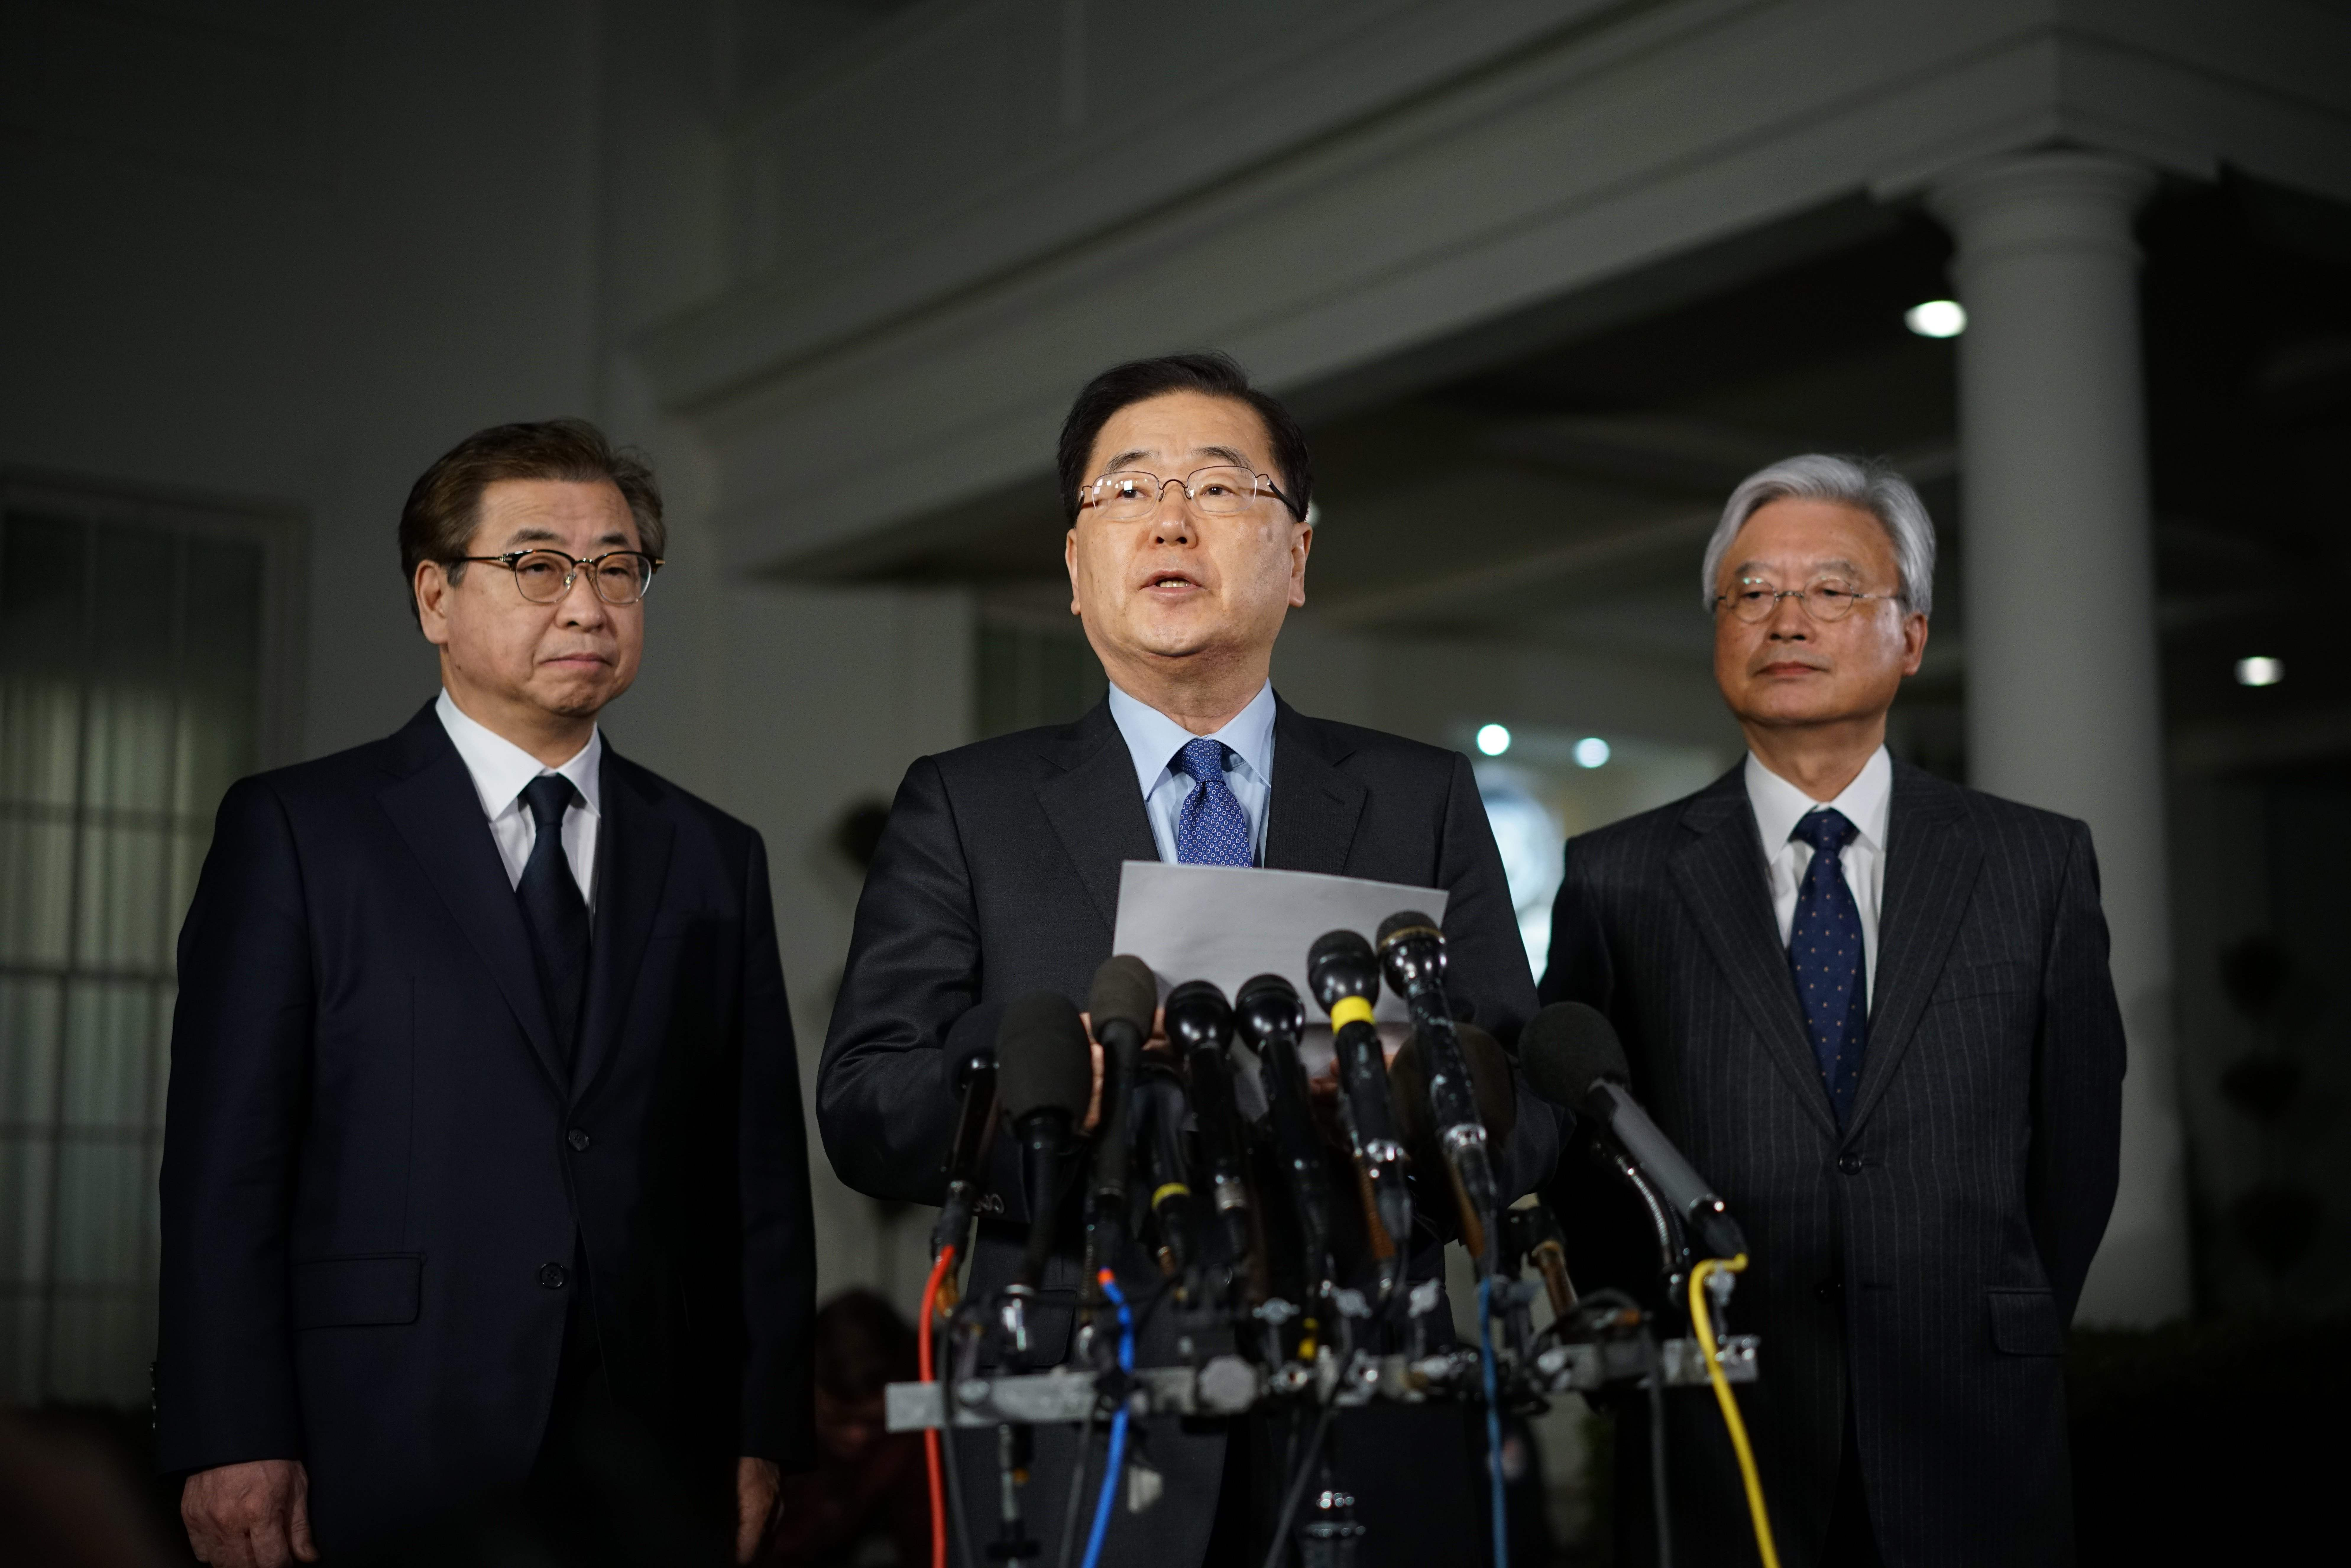 South Korean National Security Advisor Chung Eui-yong flanked by South Korea National Intelligence Service chief Suh Hoon (L) and South Korea's ambassador to the United States Cho Yoon-je (R), outside the West Wing of the White House on March 8, 2018 in Washington, DC.